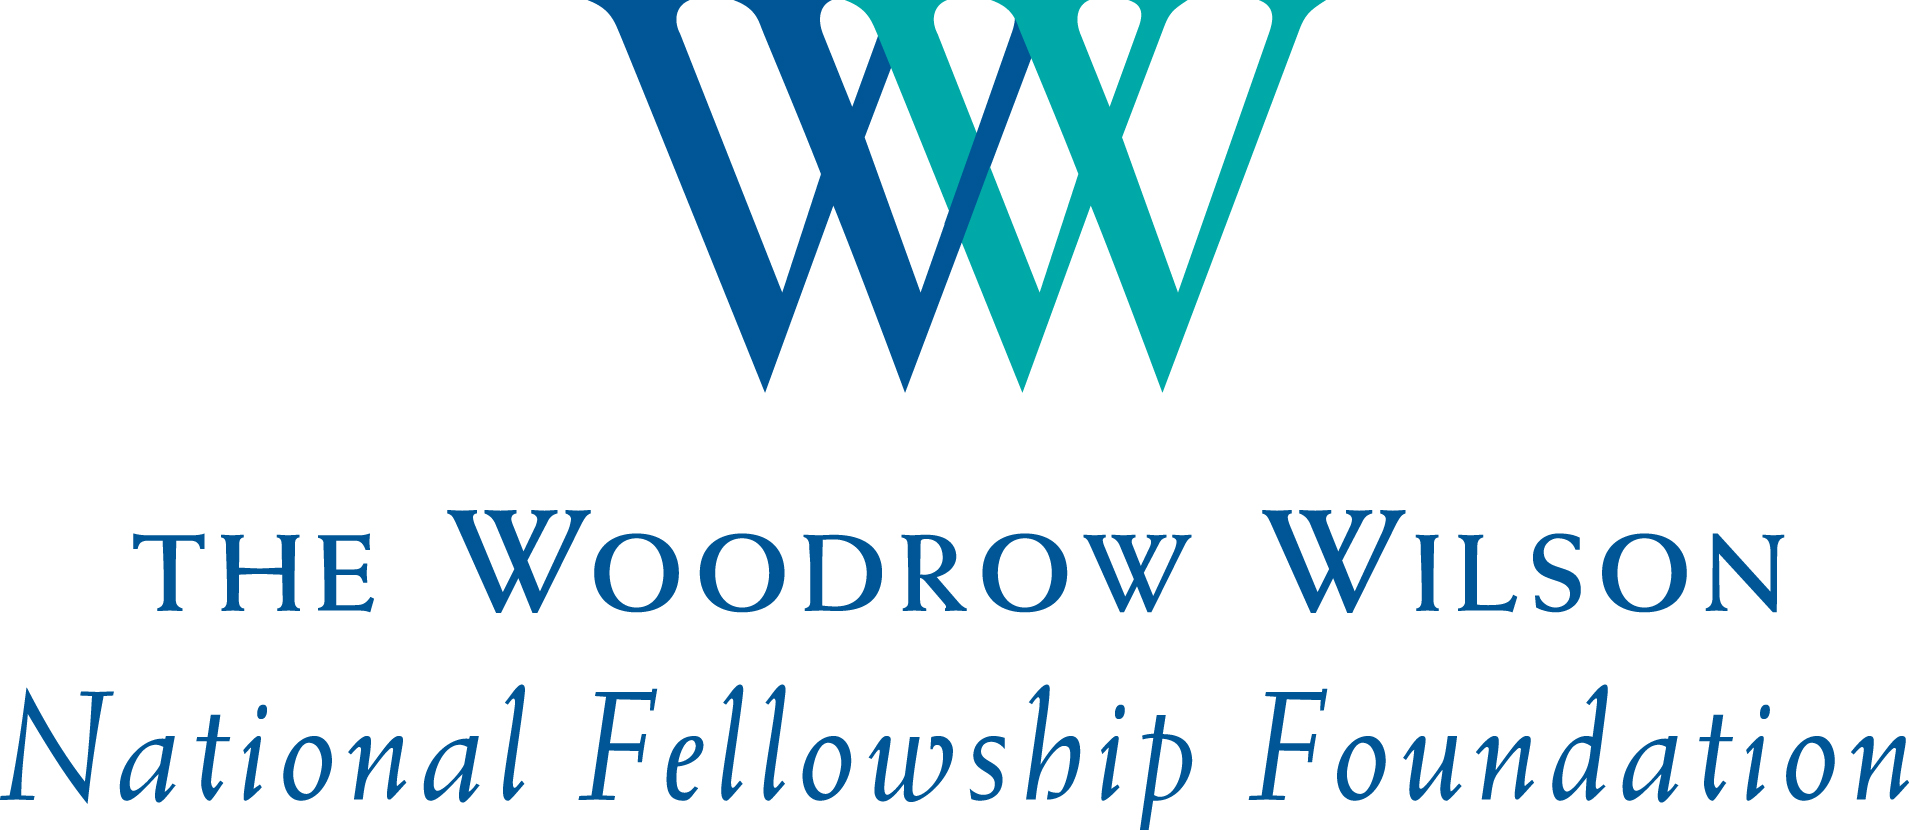 woodrow wilson teaching fellowship applications now open profellow woodrow wilson teaching fellowship